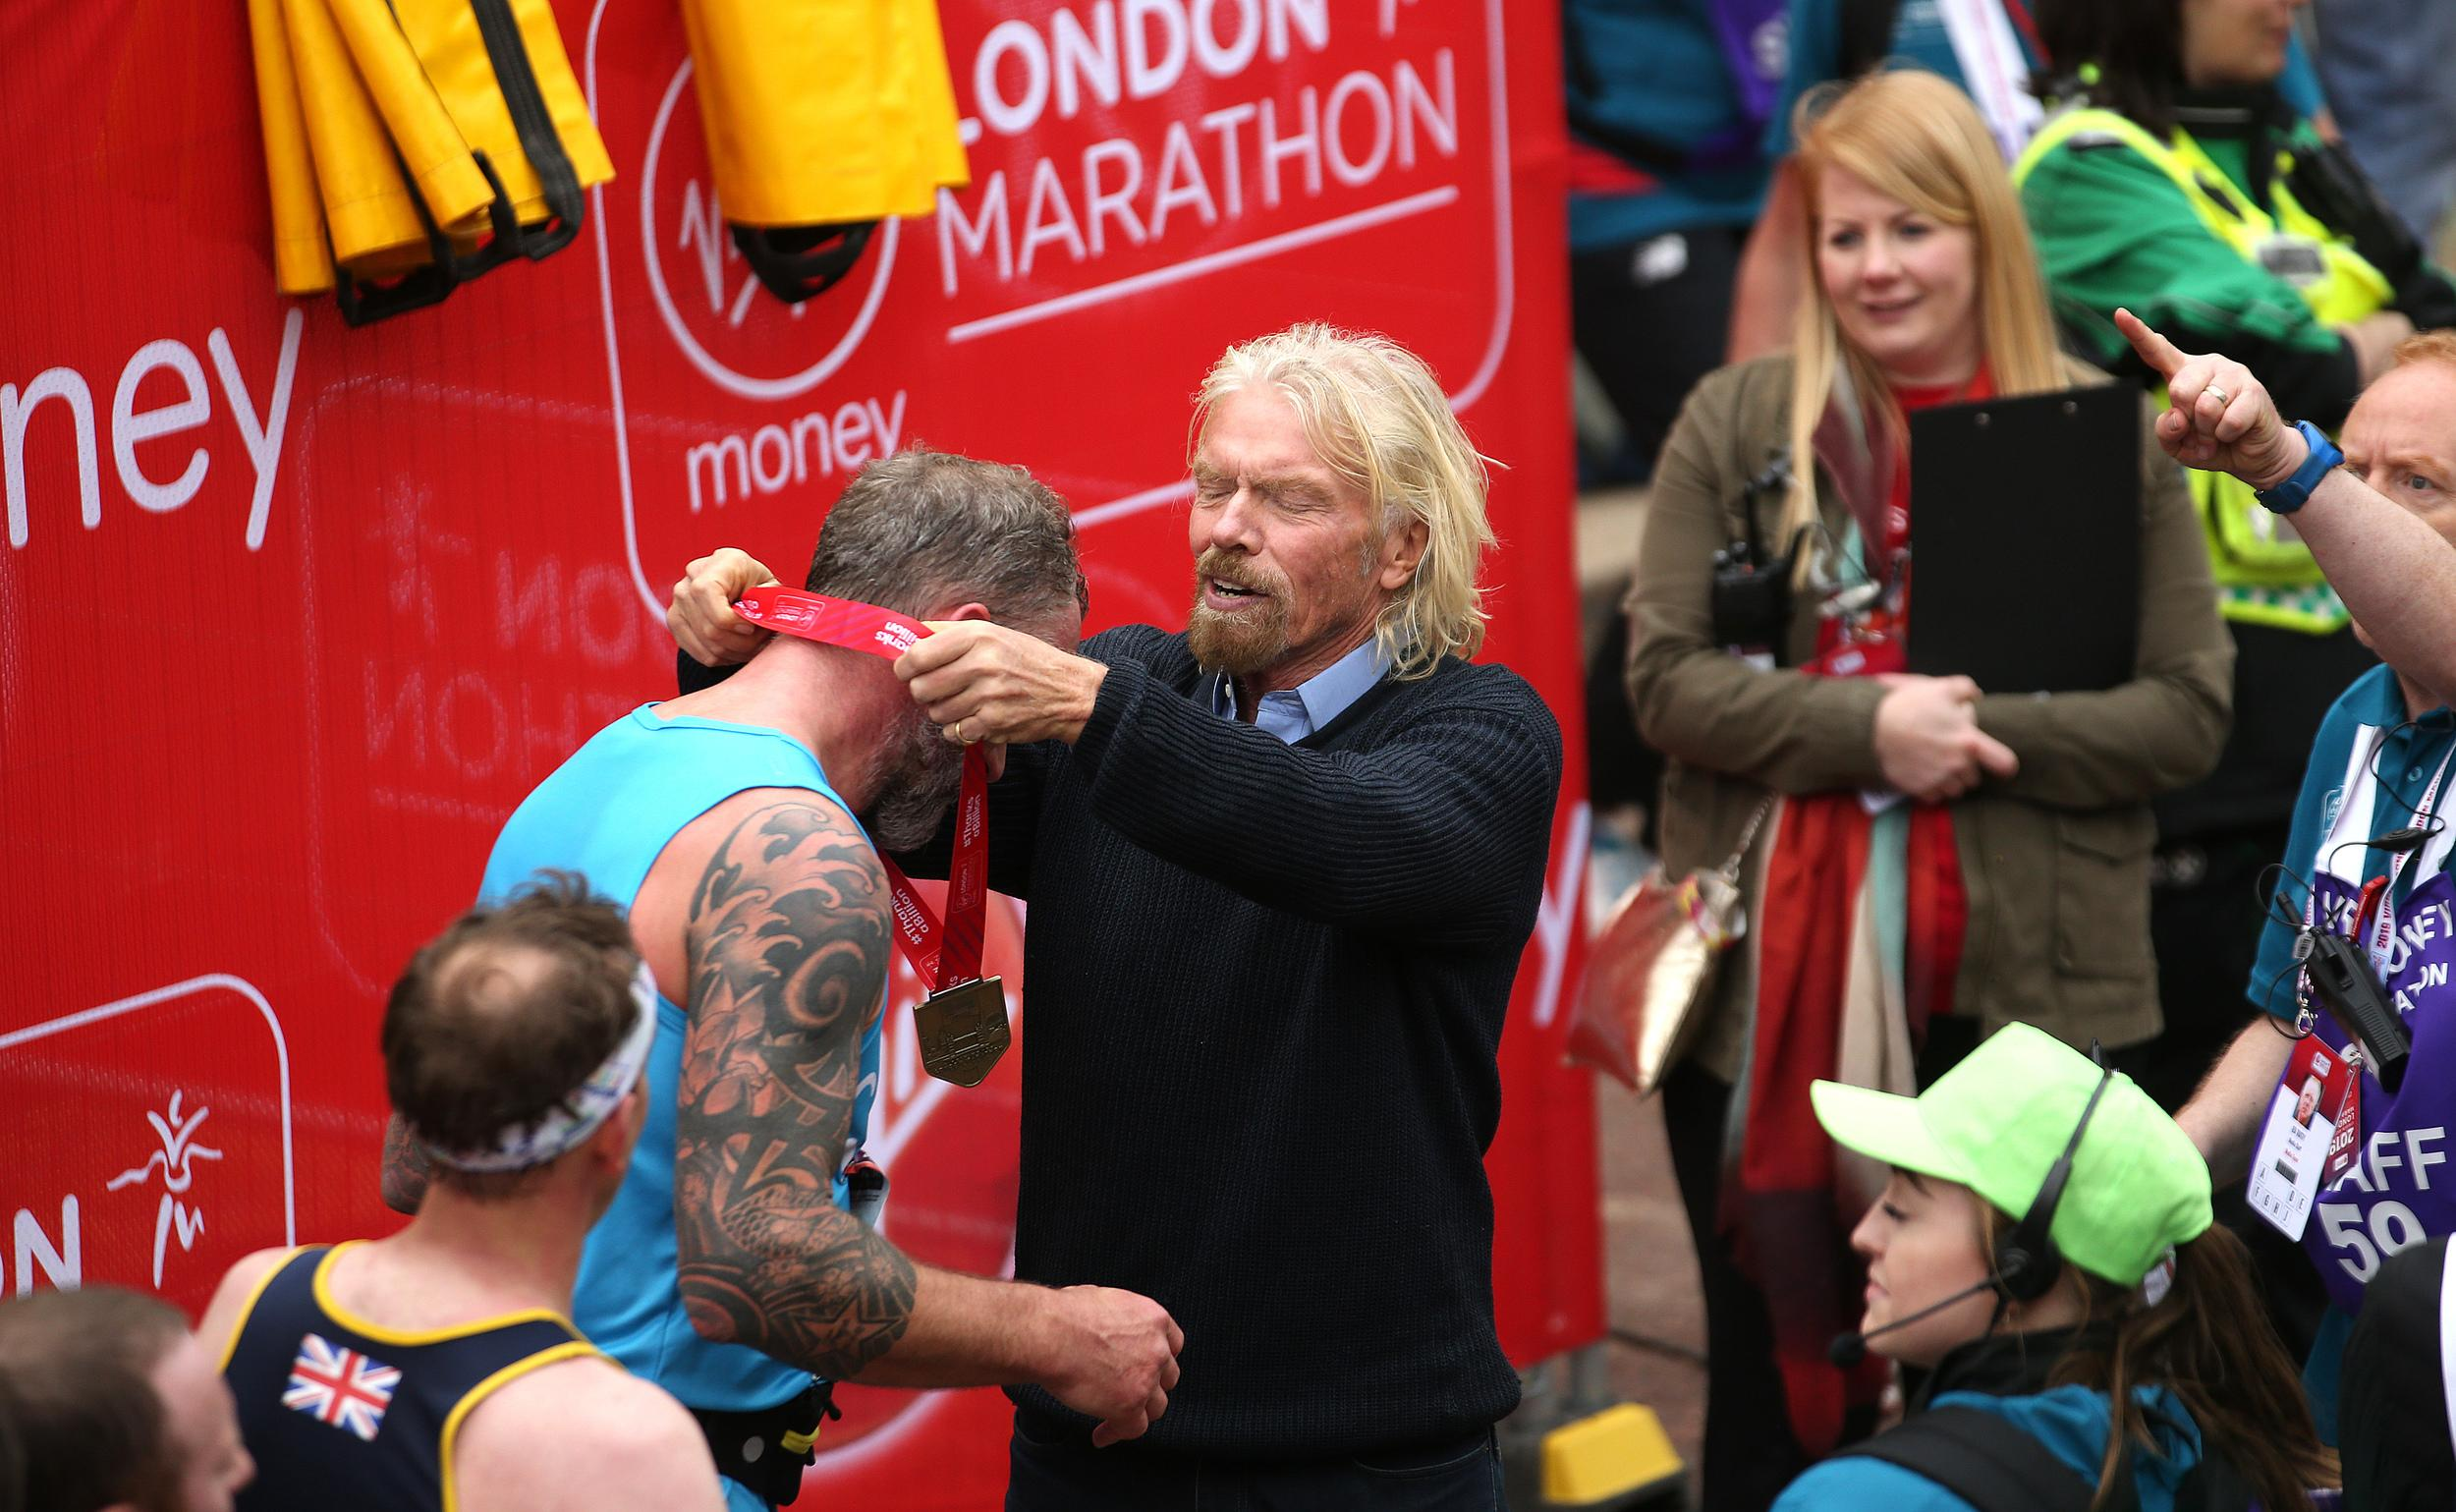 Many were raising money for charity - and there was a surprise royal visitor.